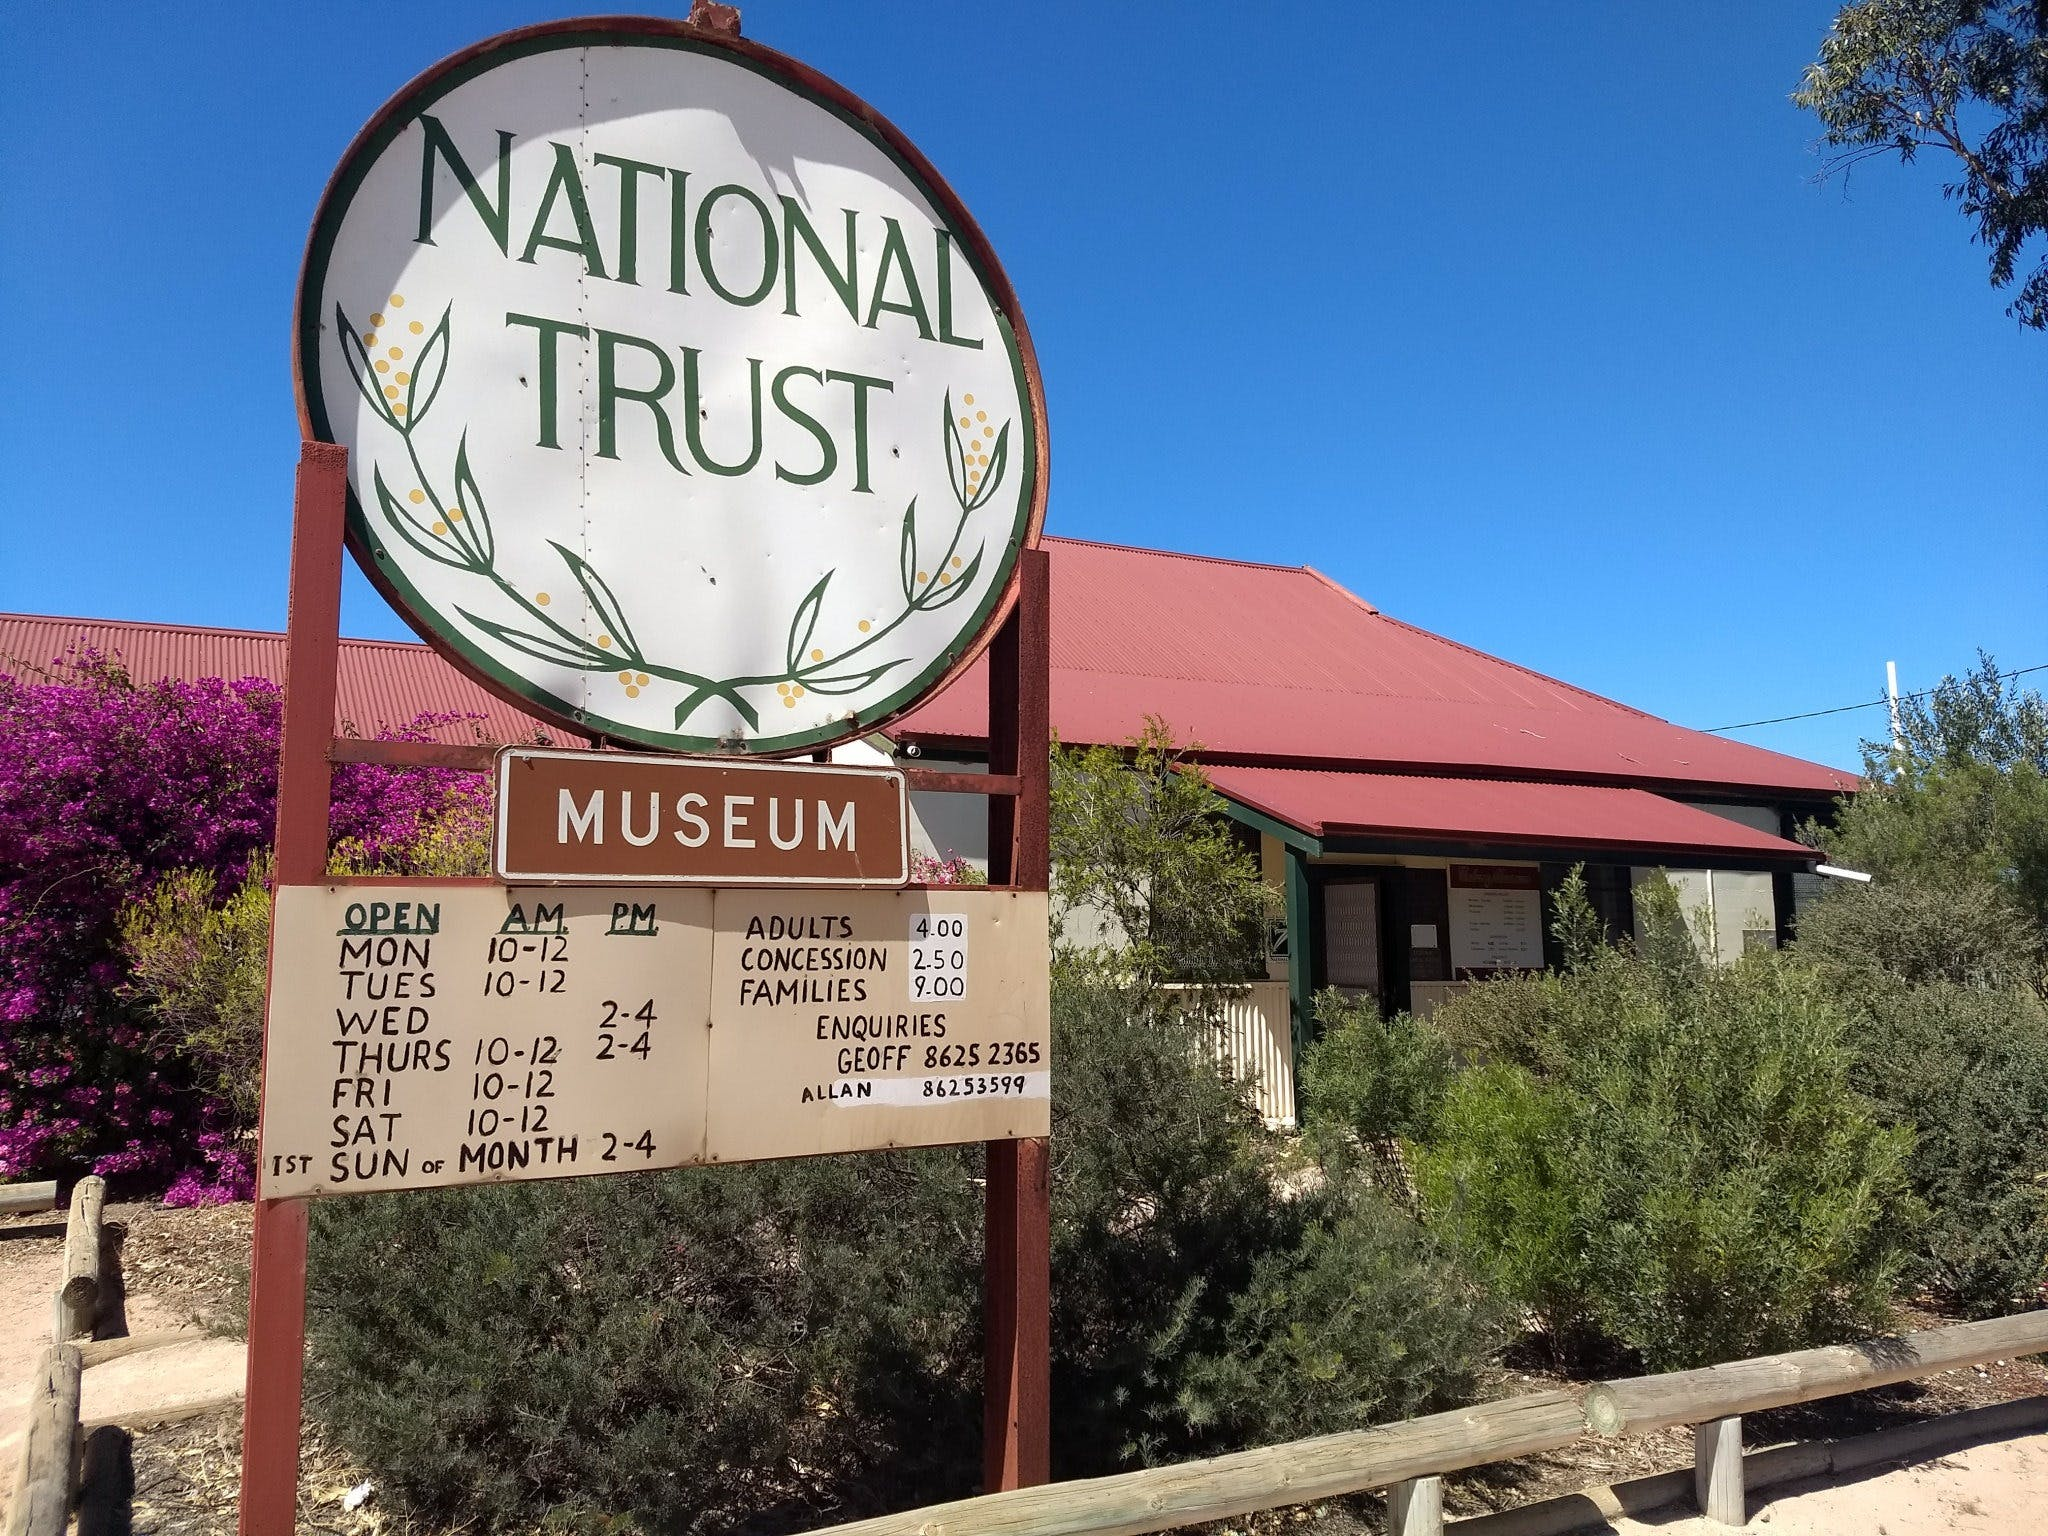 Ceduna National Trust Musuem - Attractions